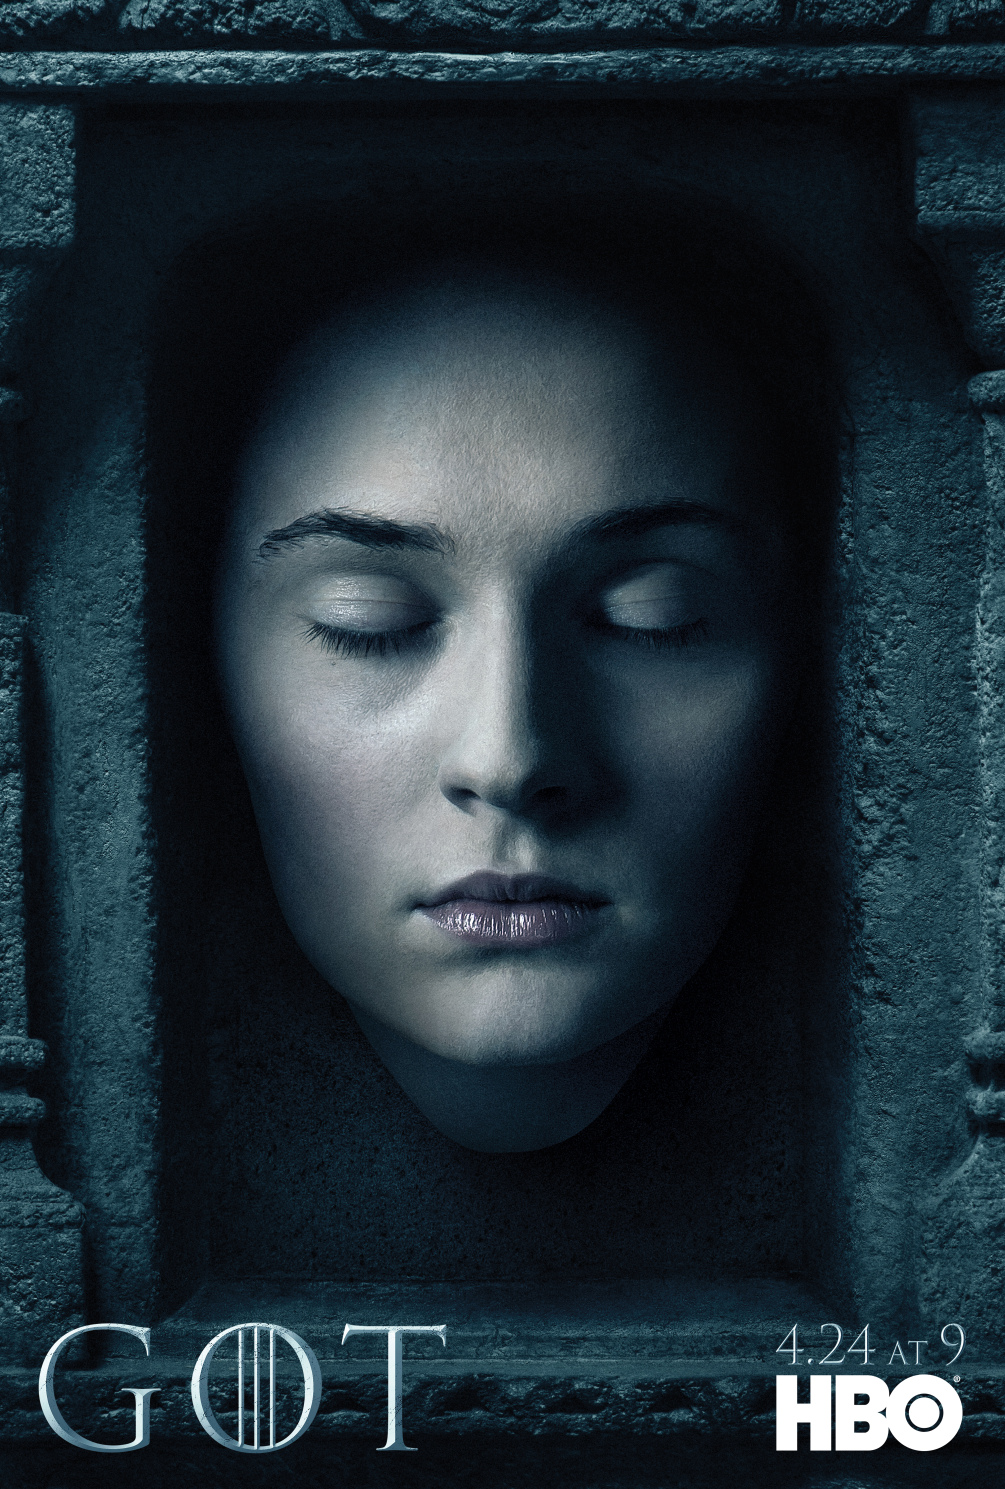 Galerry Game of throne season 6 poster Game of thrones season 6 poster